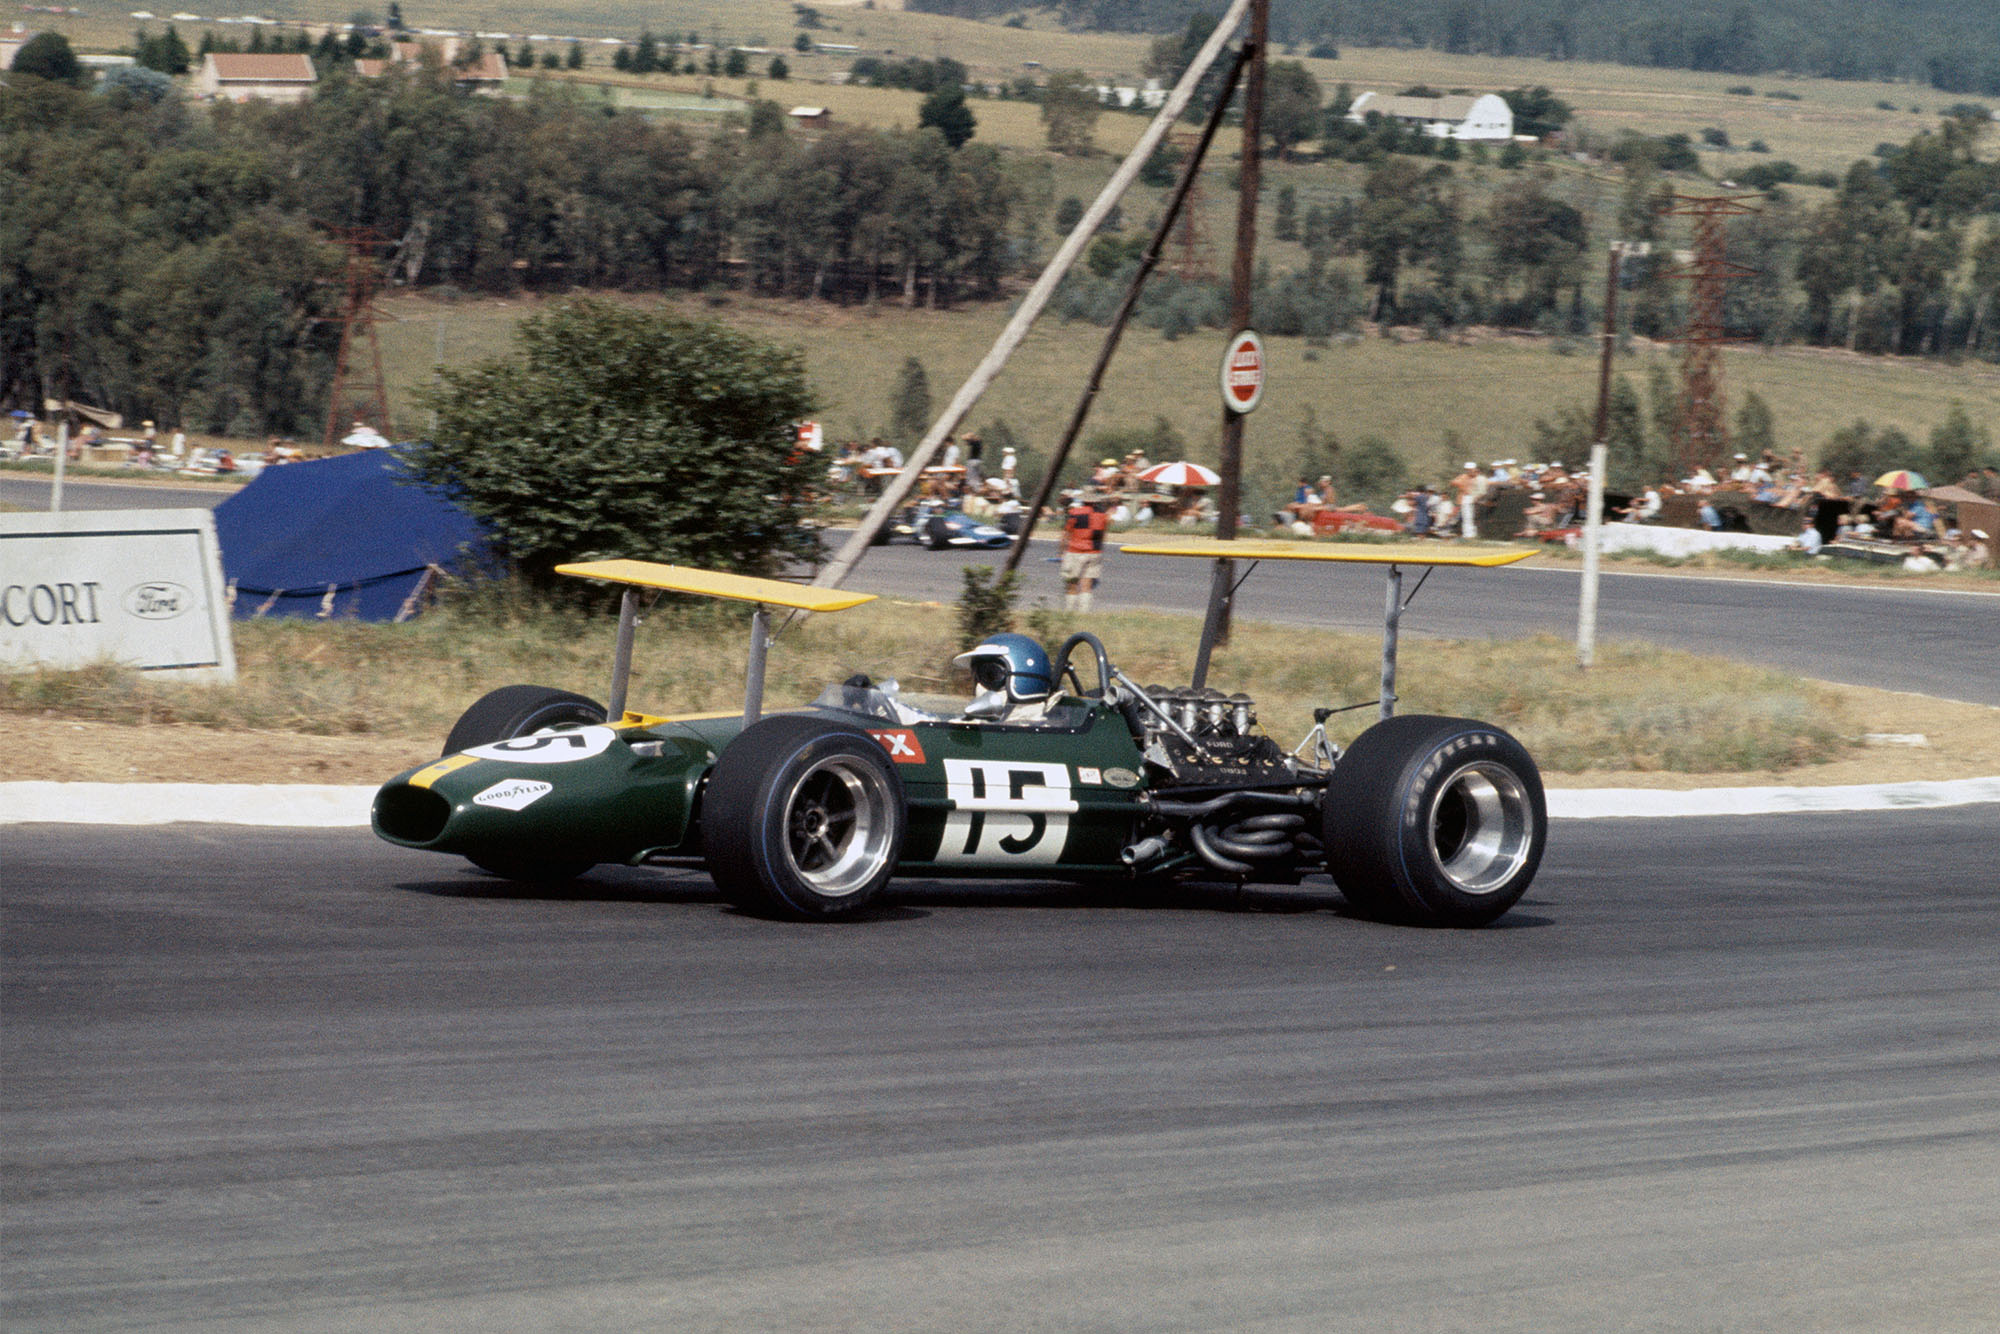 Jack Brabham in his Brabham at the 1969 South African grand Prix